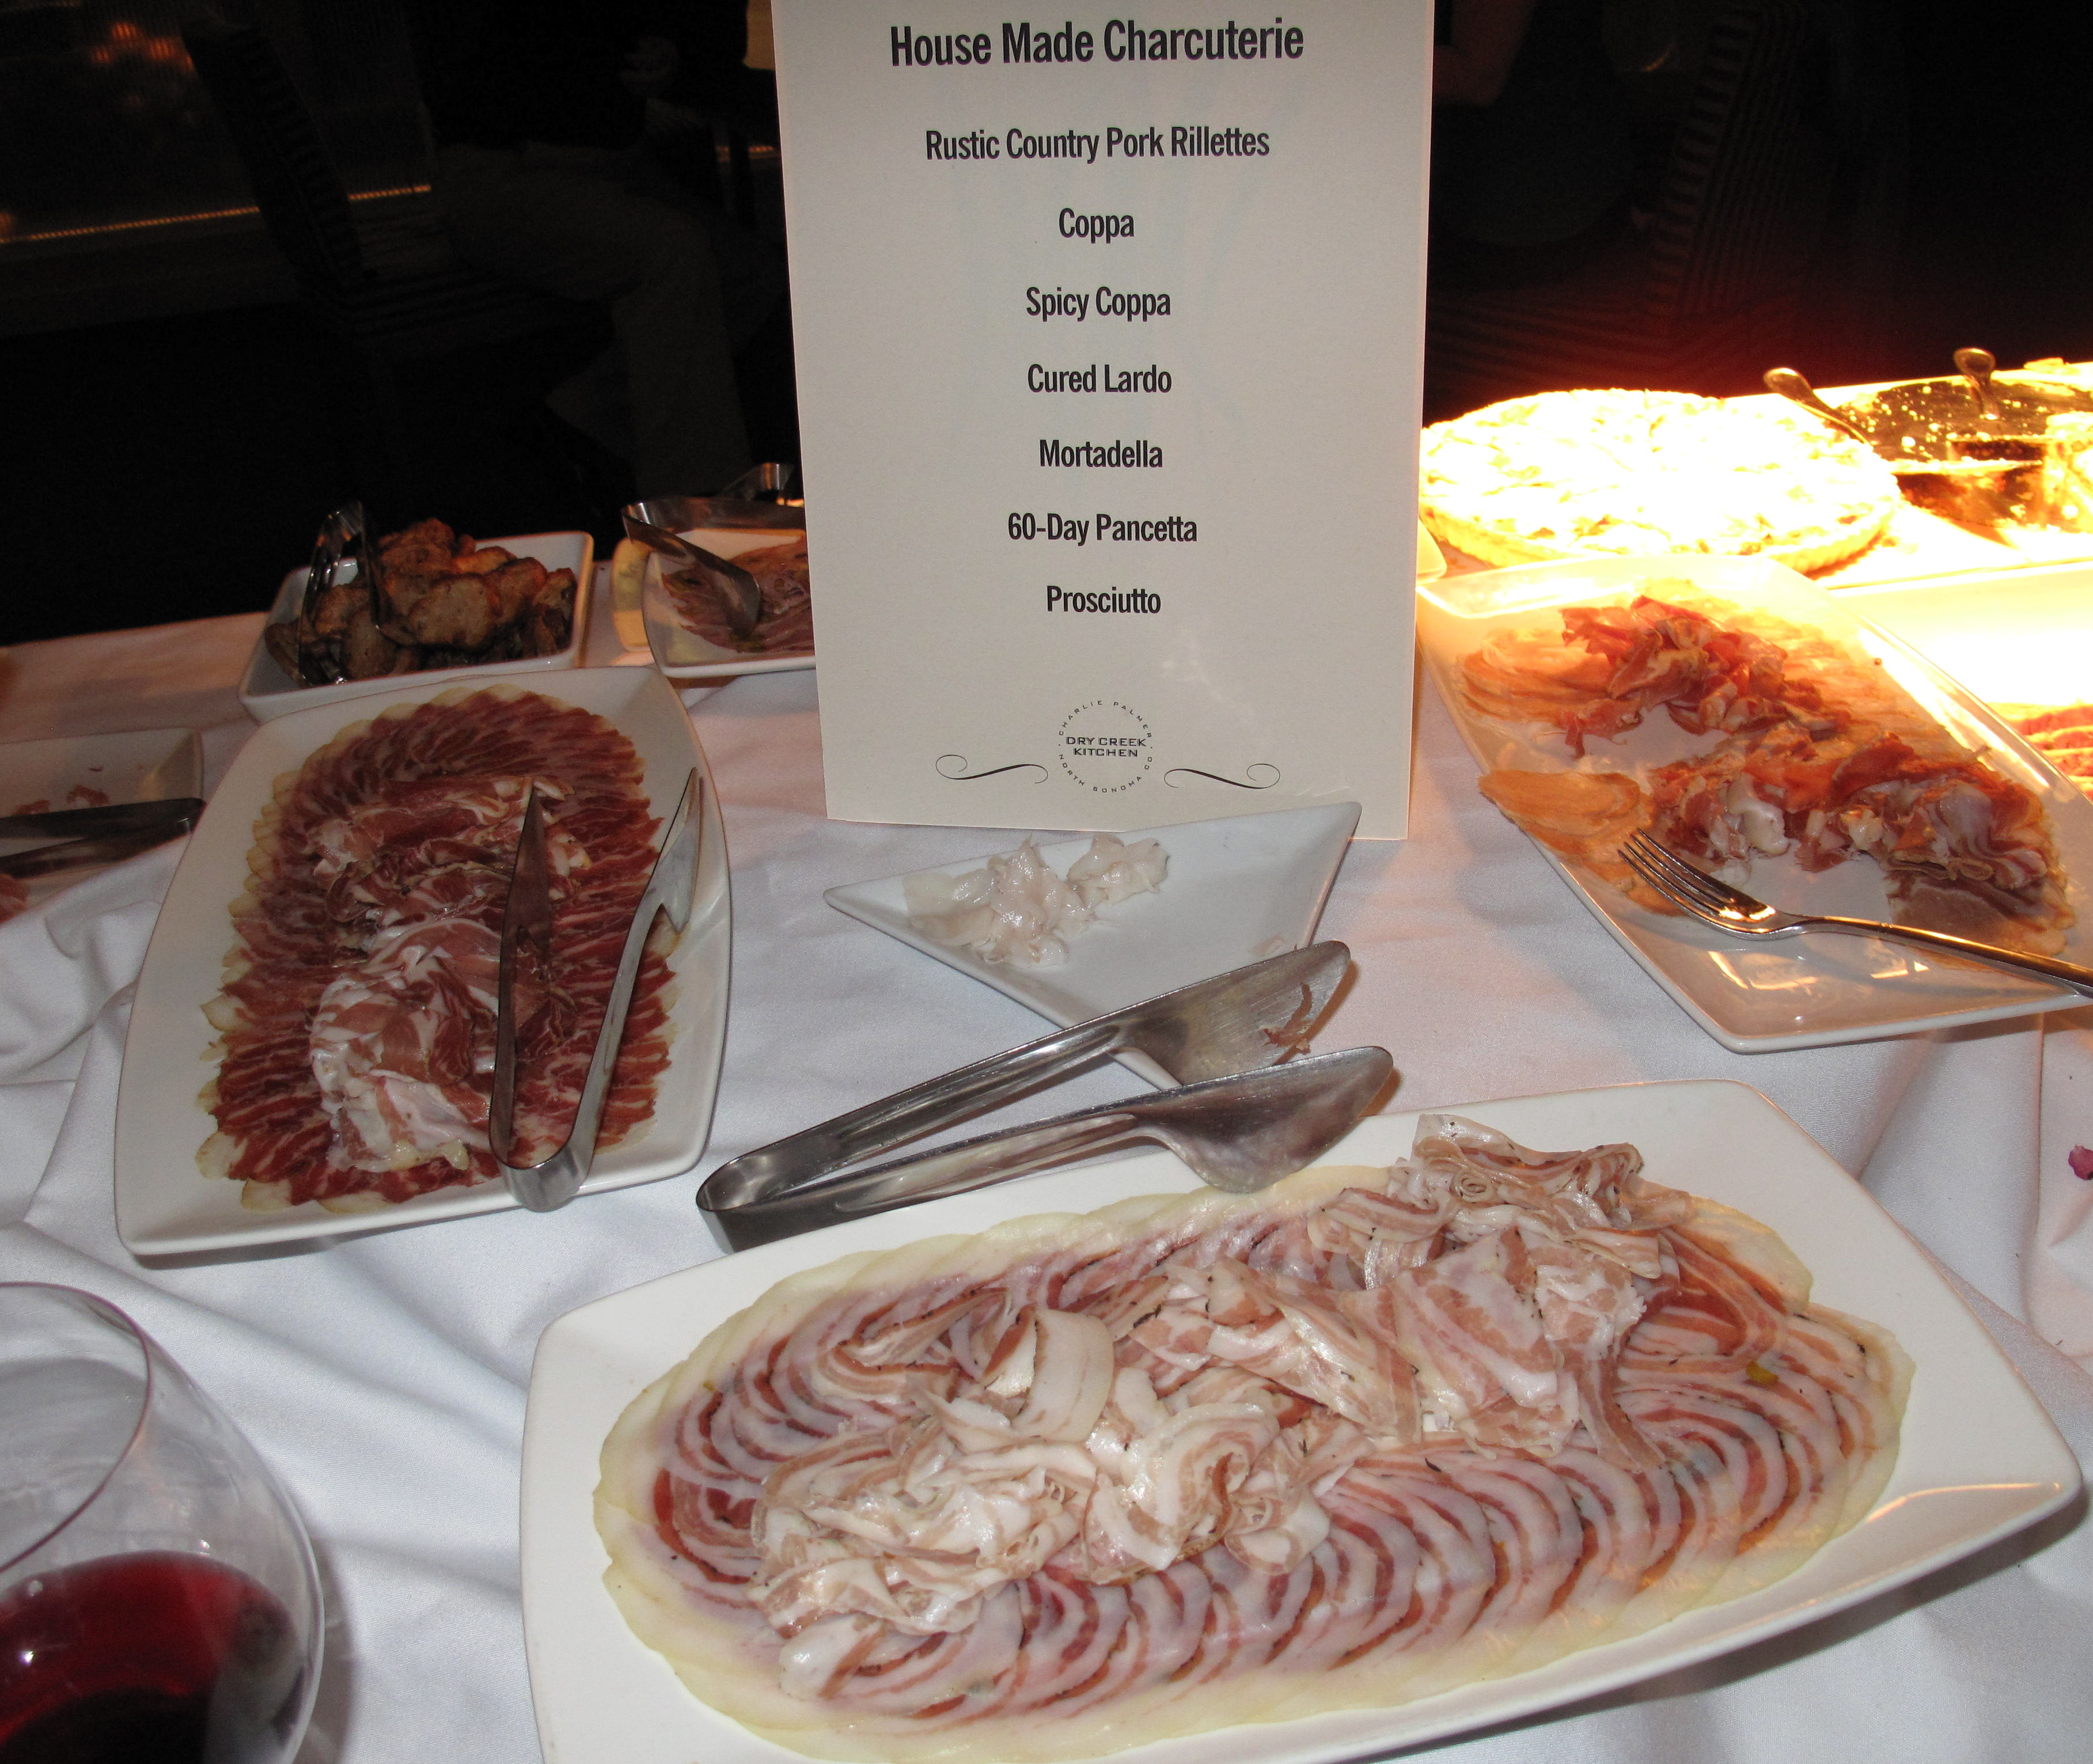 The event had many impressive indoor stations. One of them was a charcuterie table, covered with platters of every salumi imaginable, from coppa to lardo to mortadella.